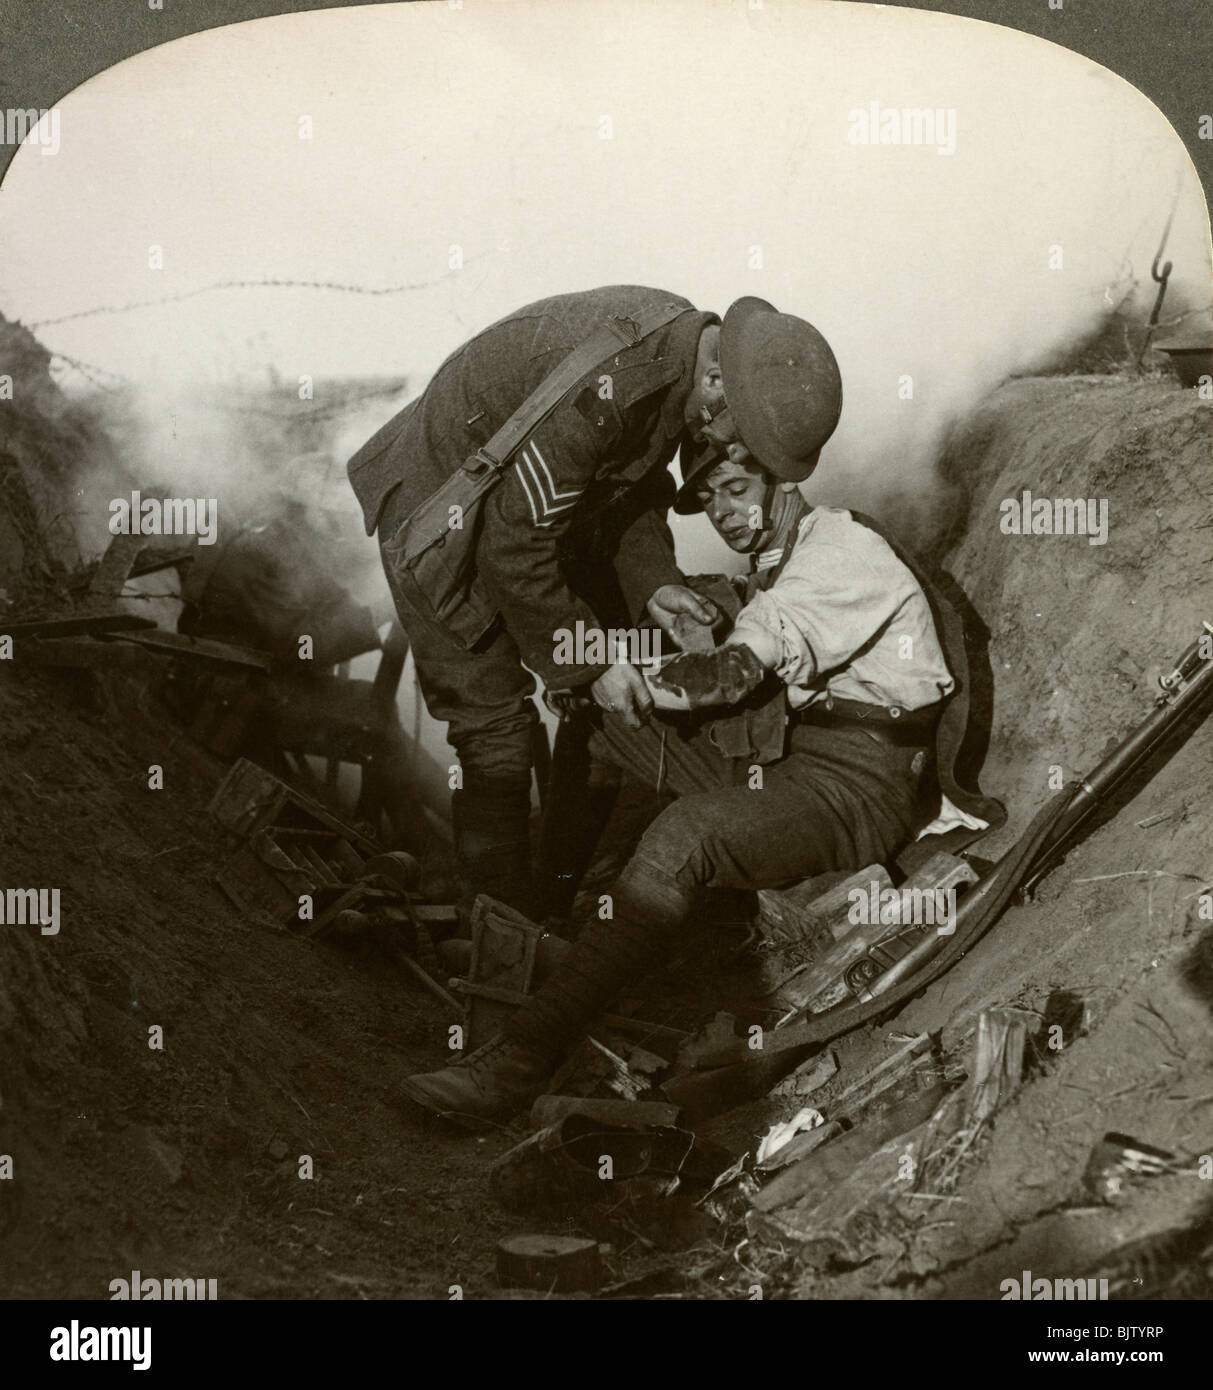 Soldier receiving first aid from a sergeant in a sap, Battle of Peronne, World War I, 1914-1918. - Stock Image